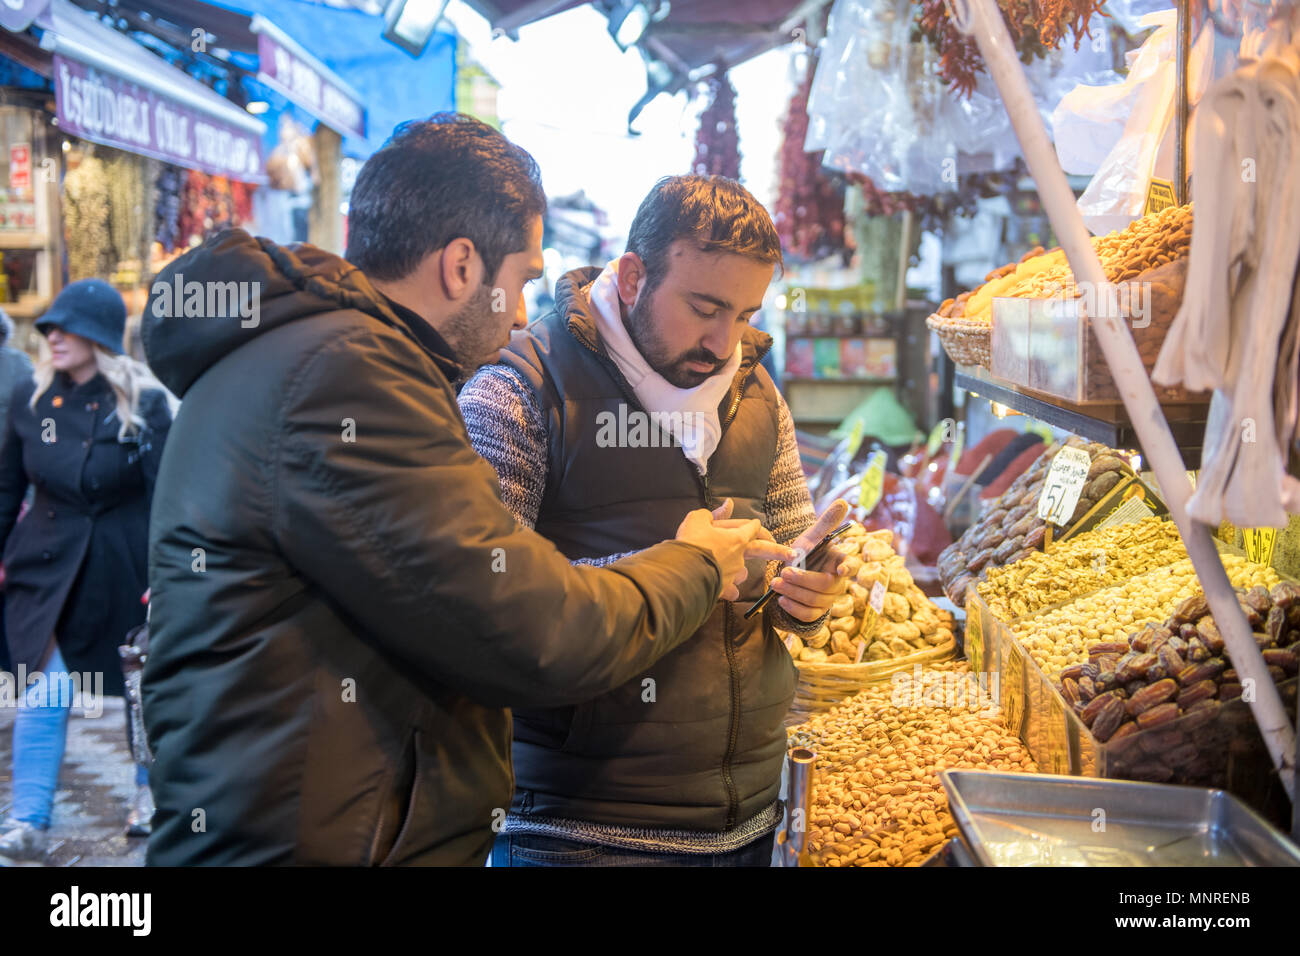 Two adult males point and look at cellphone together in front of market stall at outdoor marketplace, Istanbul, Turkey. - Stock Image